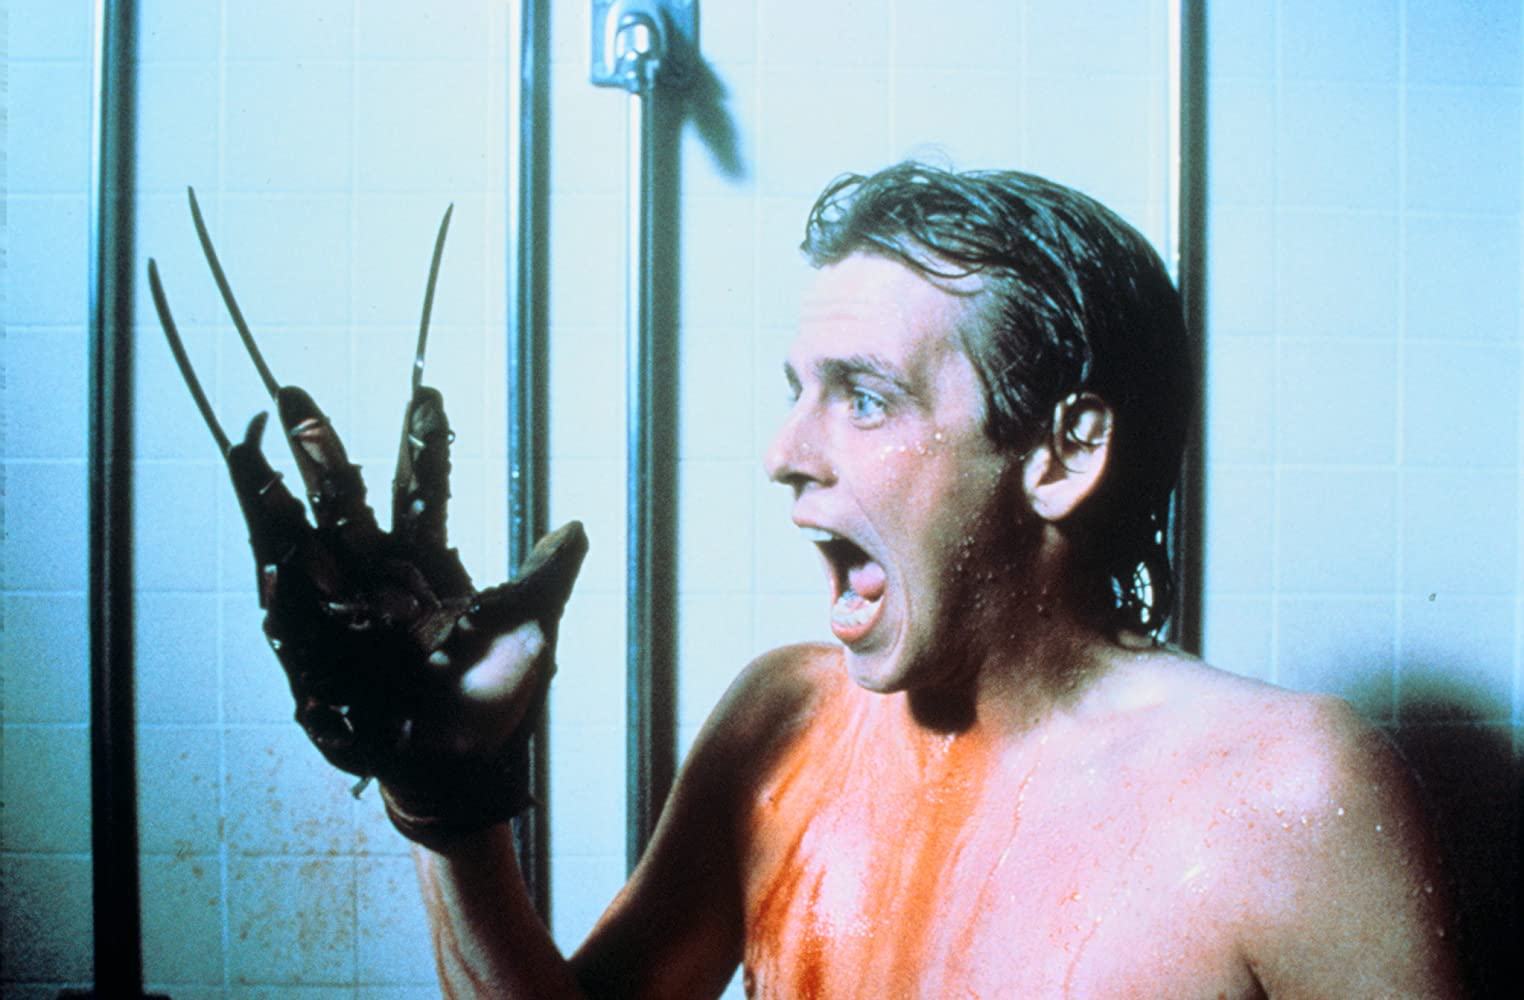 Mark Patton in A Nightmare on Elm Street Part 2: Freddy's Revenge (1985)